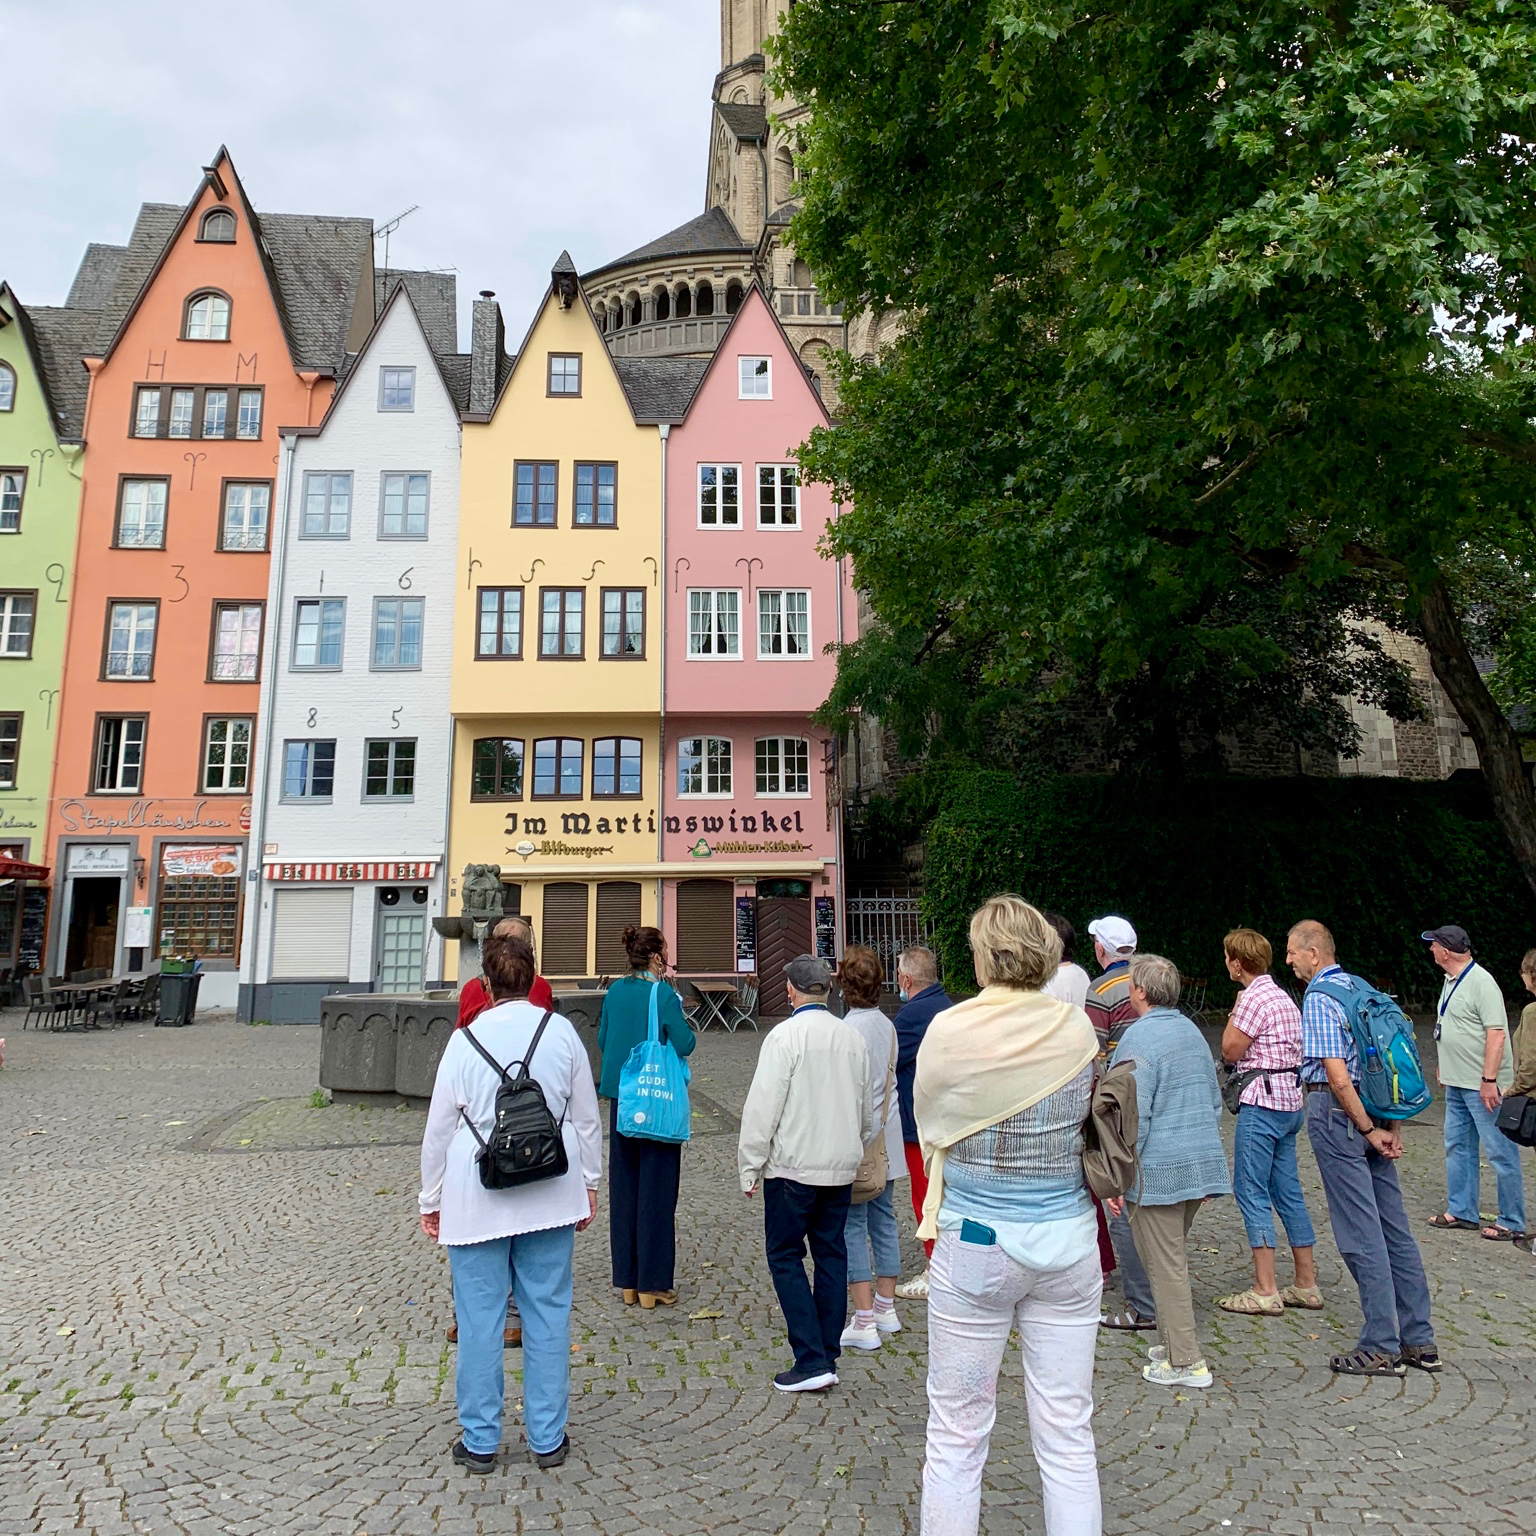 Tour guide leading a walking group through the old town, Cologne